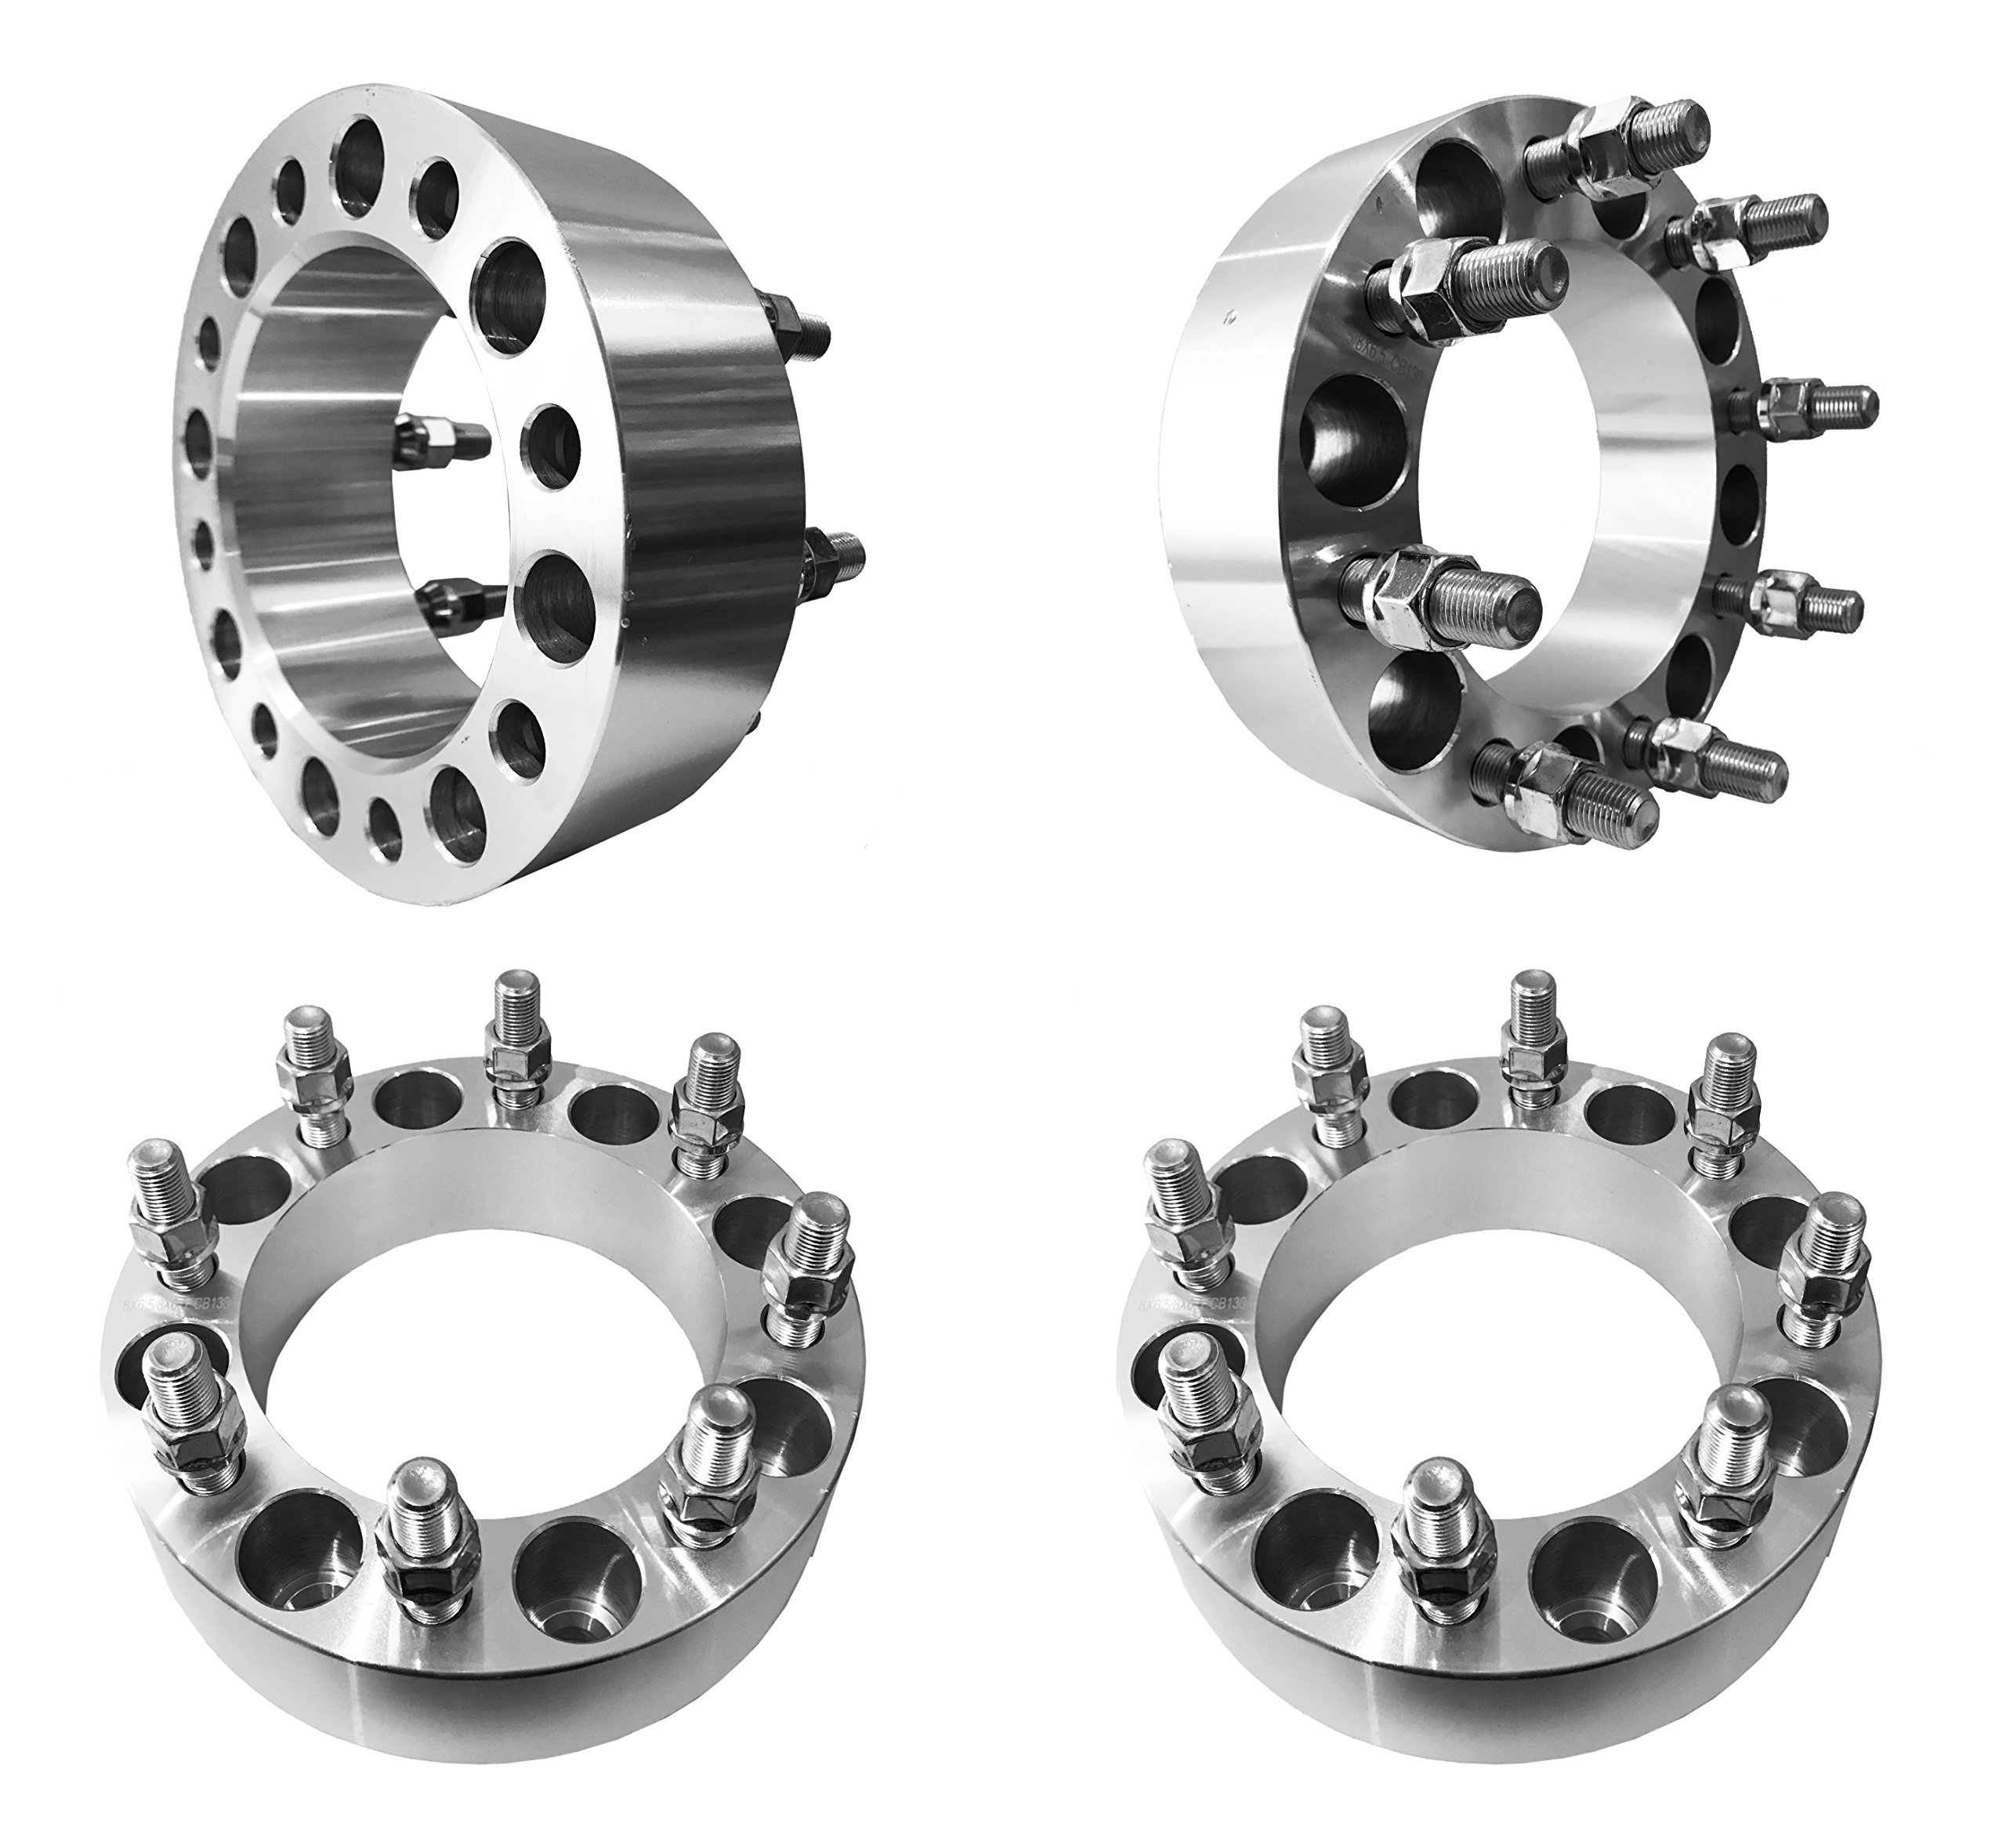 2'' Inch 8 Lug Wheel Spacers 8x6.5 (8x165.1mm) For 2000-2010 Chevy Silverado 2500HD (50mm) Wheel Spacers 8x6.5'' (8x165.1mm) with M14x1.5 Studs (Silver) (4-Pcs)